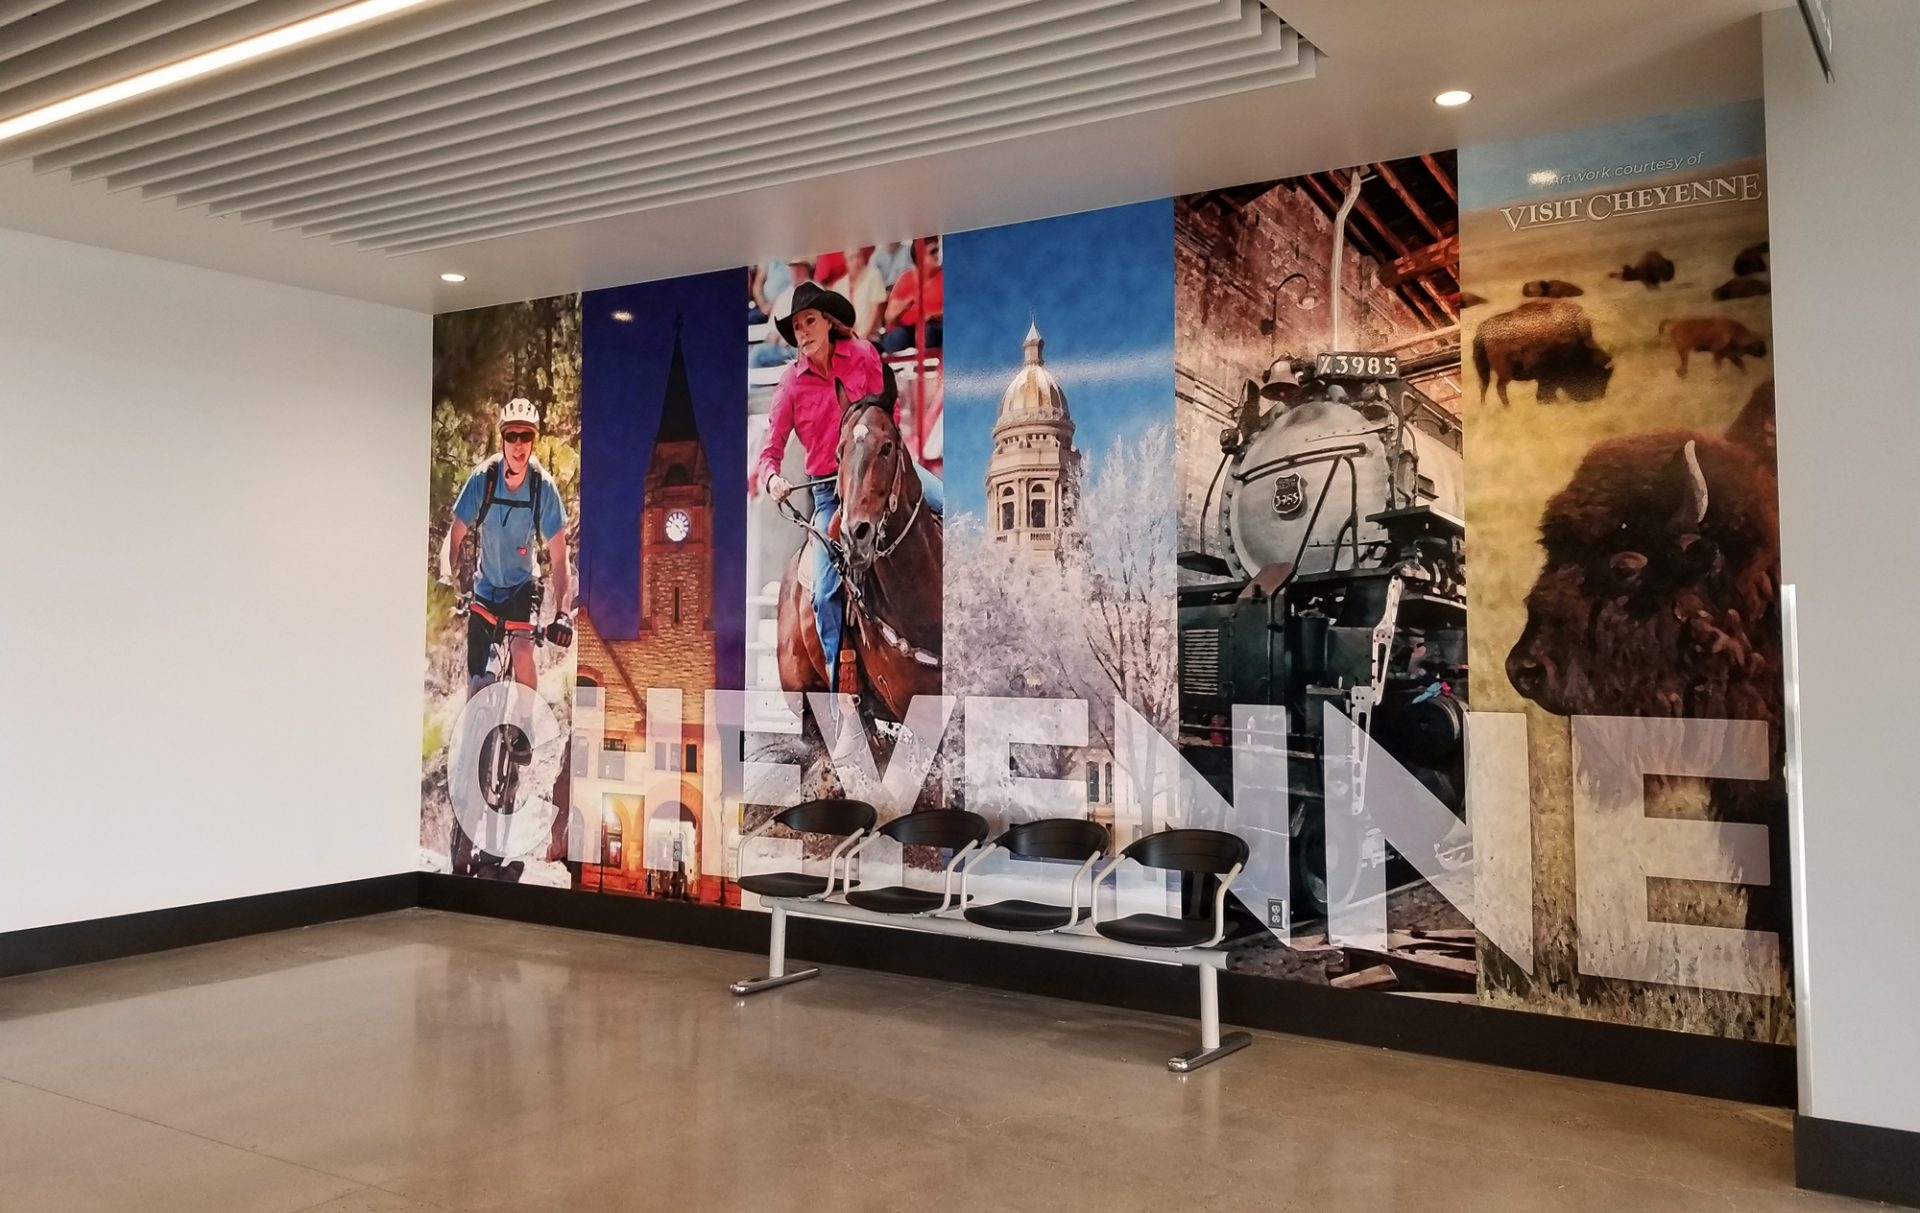 wall graphic for Cheyenne regional airport